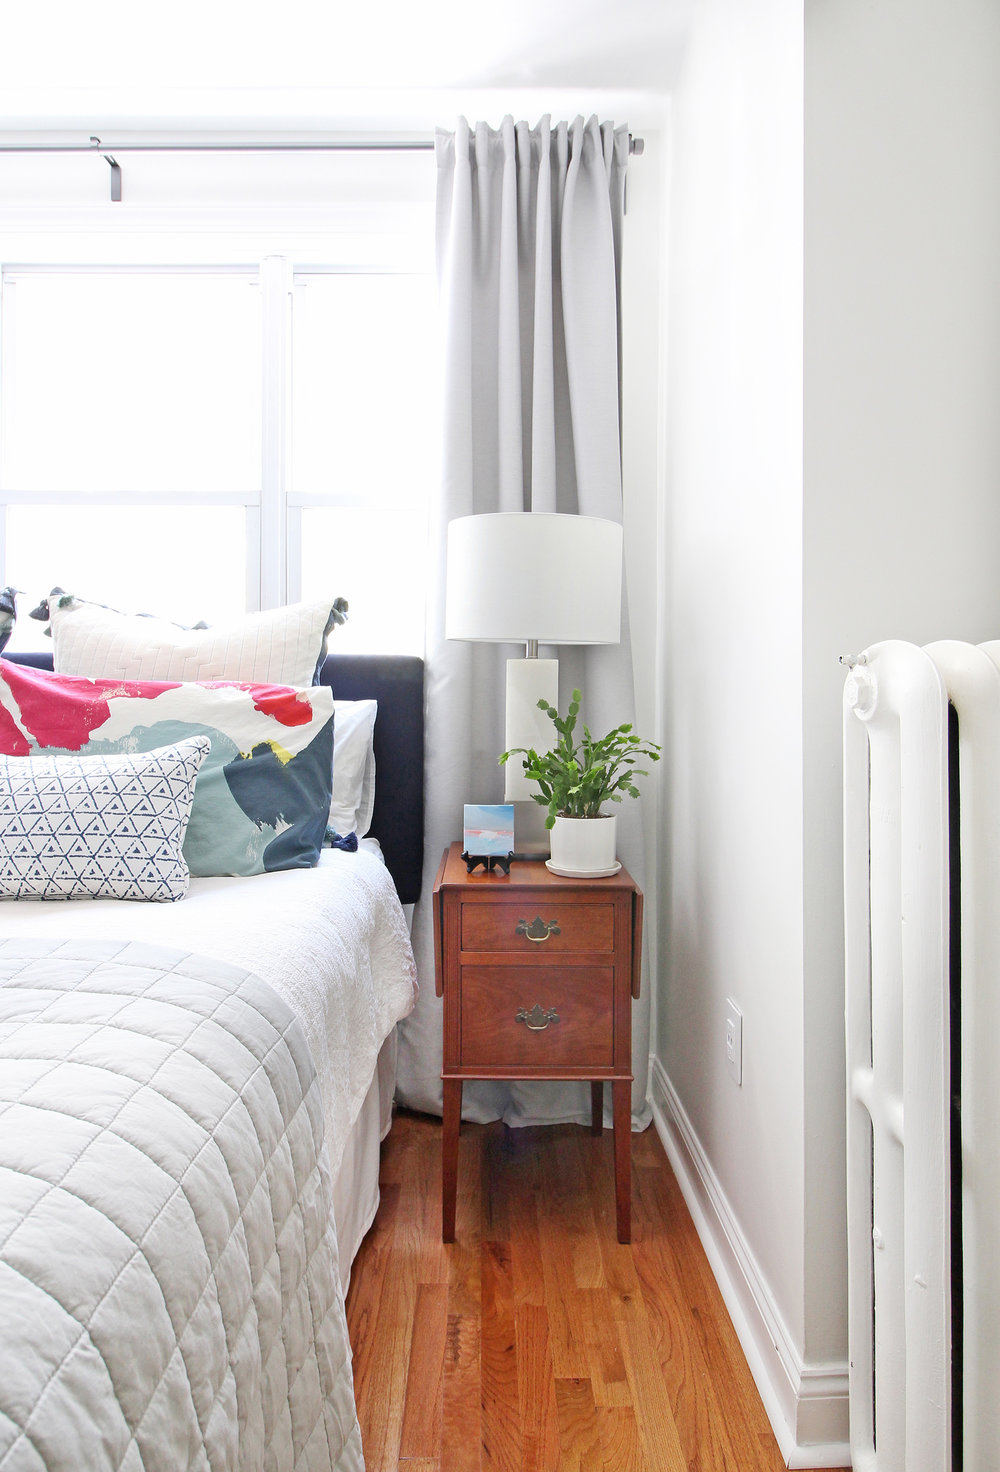 Taking a look back at the top 10 blog posts for Mix & Match Design Company of 2018! Come see what was popular in interior decorating, design tips, e-design projects, and more. One of the posts that made the list? How to choose curtains, blinds, and shades for your home!